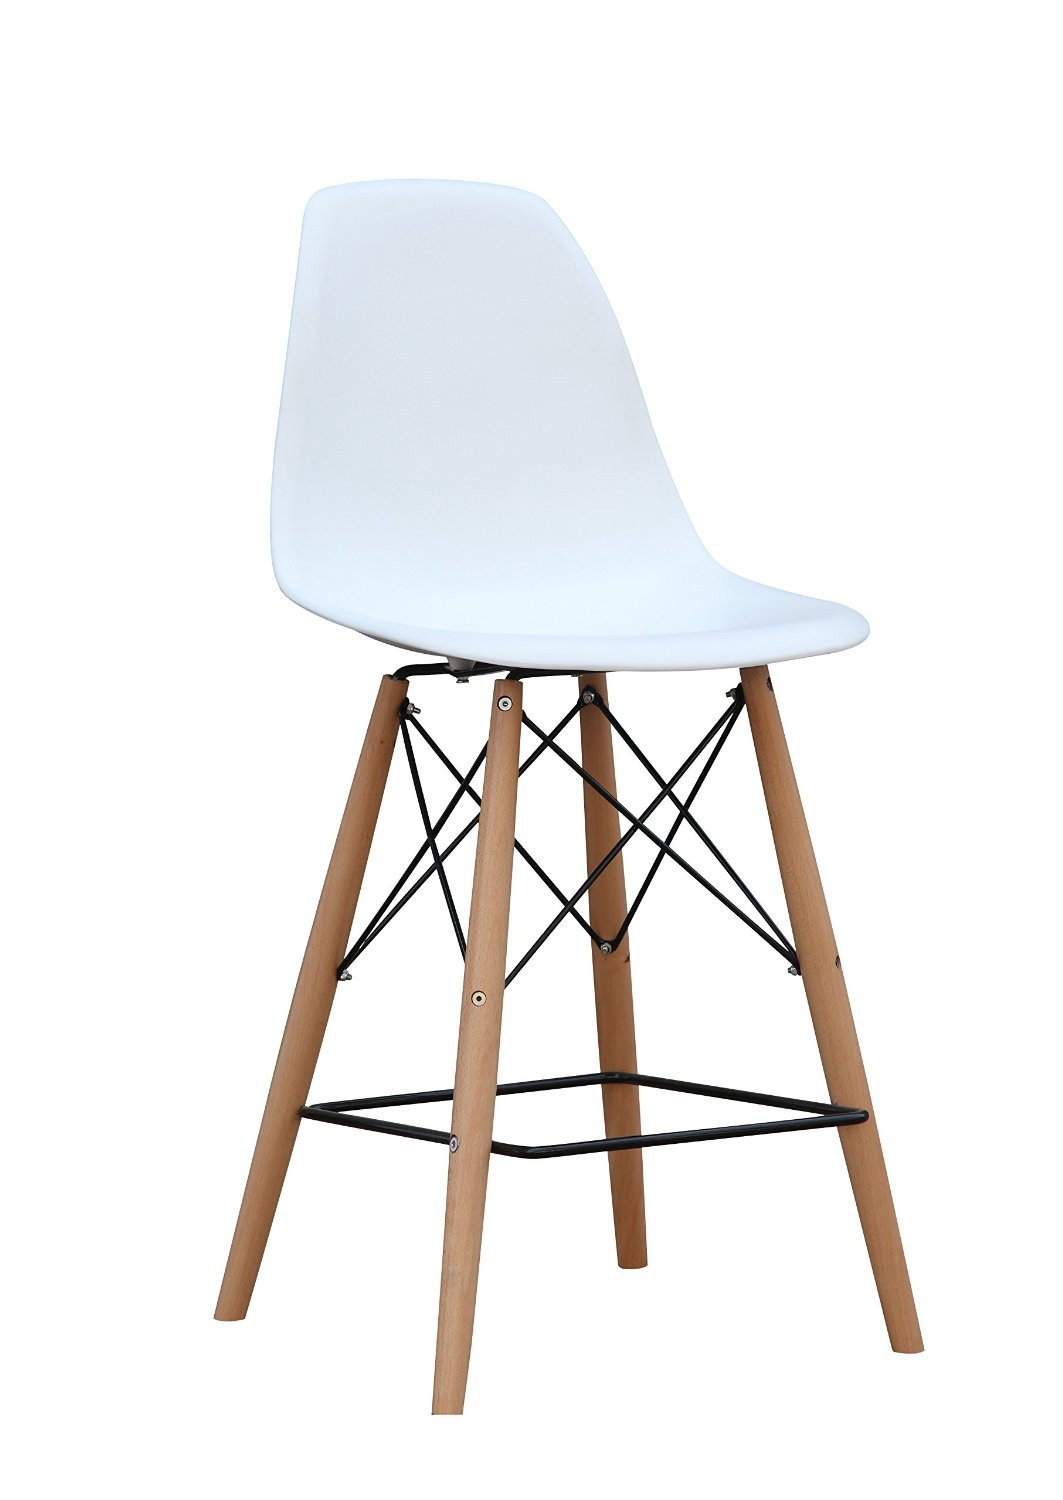 ModHaus Mid Century Modern Eames DSW Style White Counter Stool Chair with Dowel Wood Base